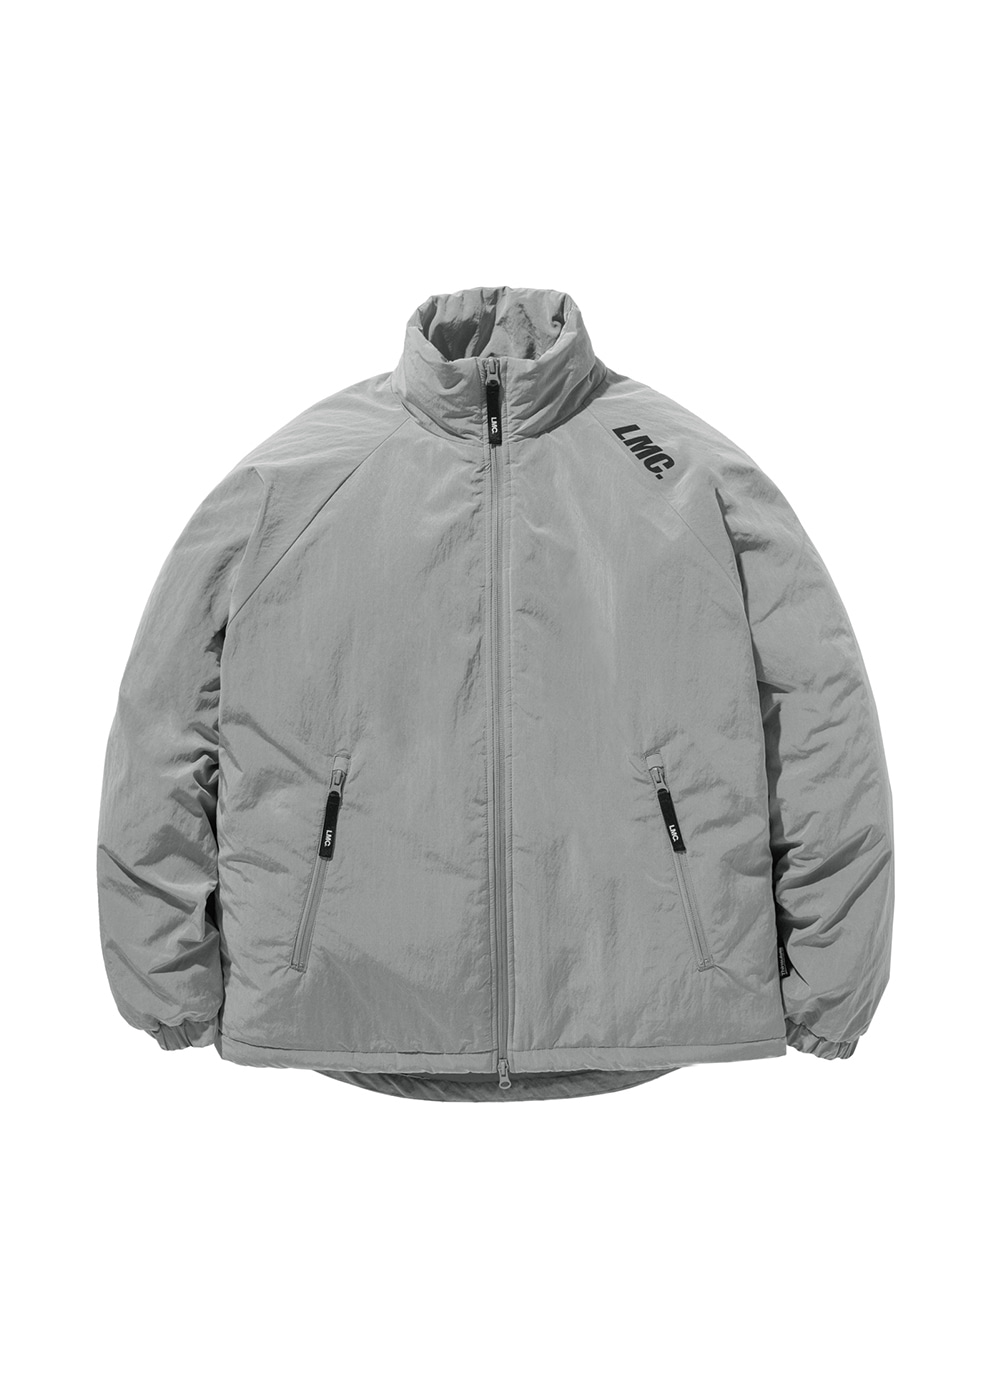 LMC FN LEVEL7 THINSULATE PARKA gray